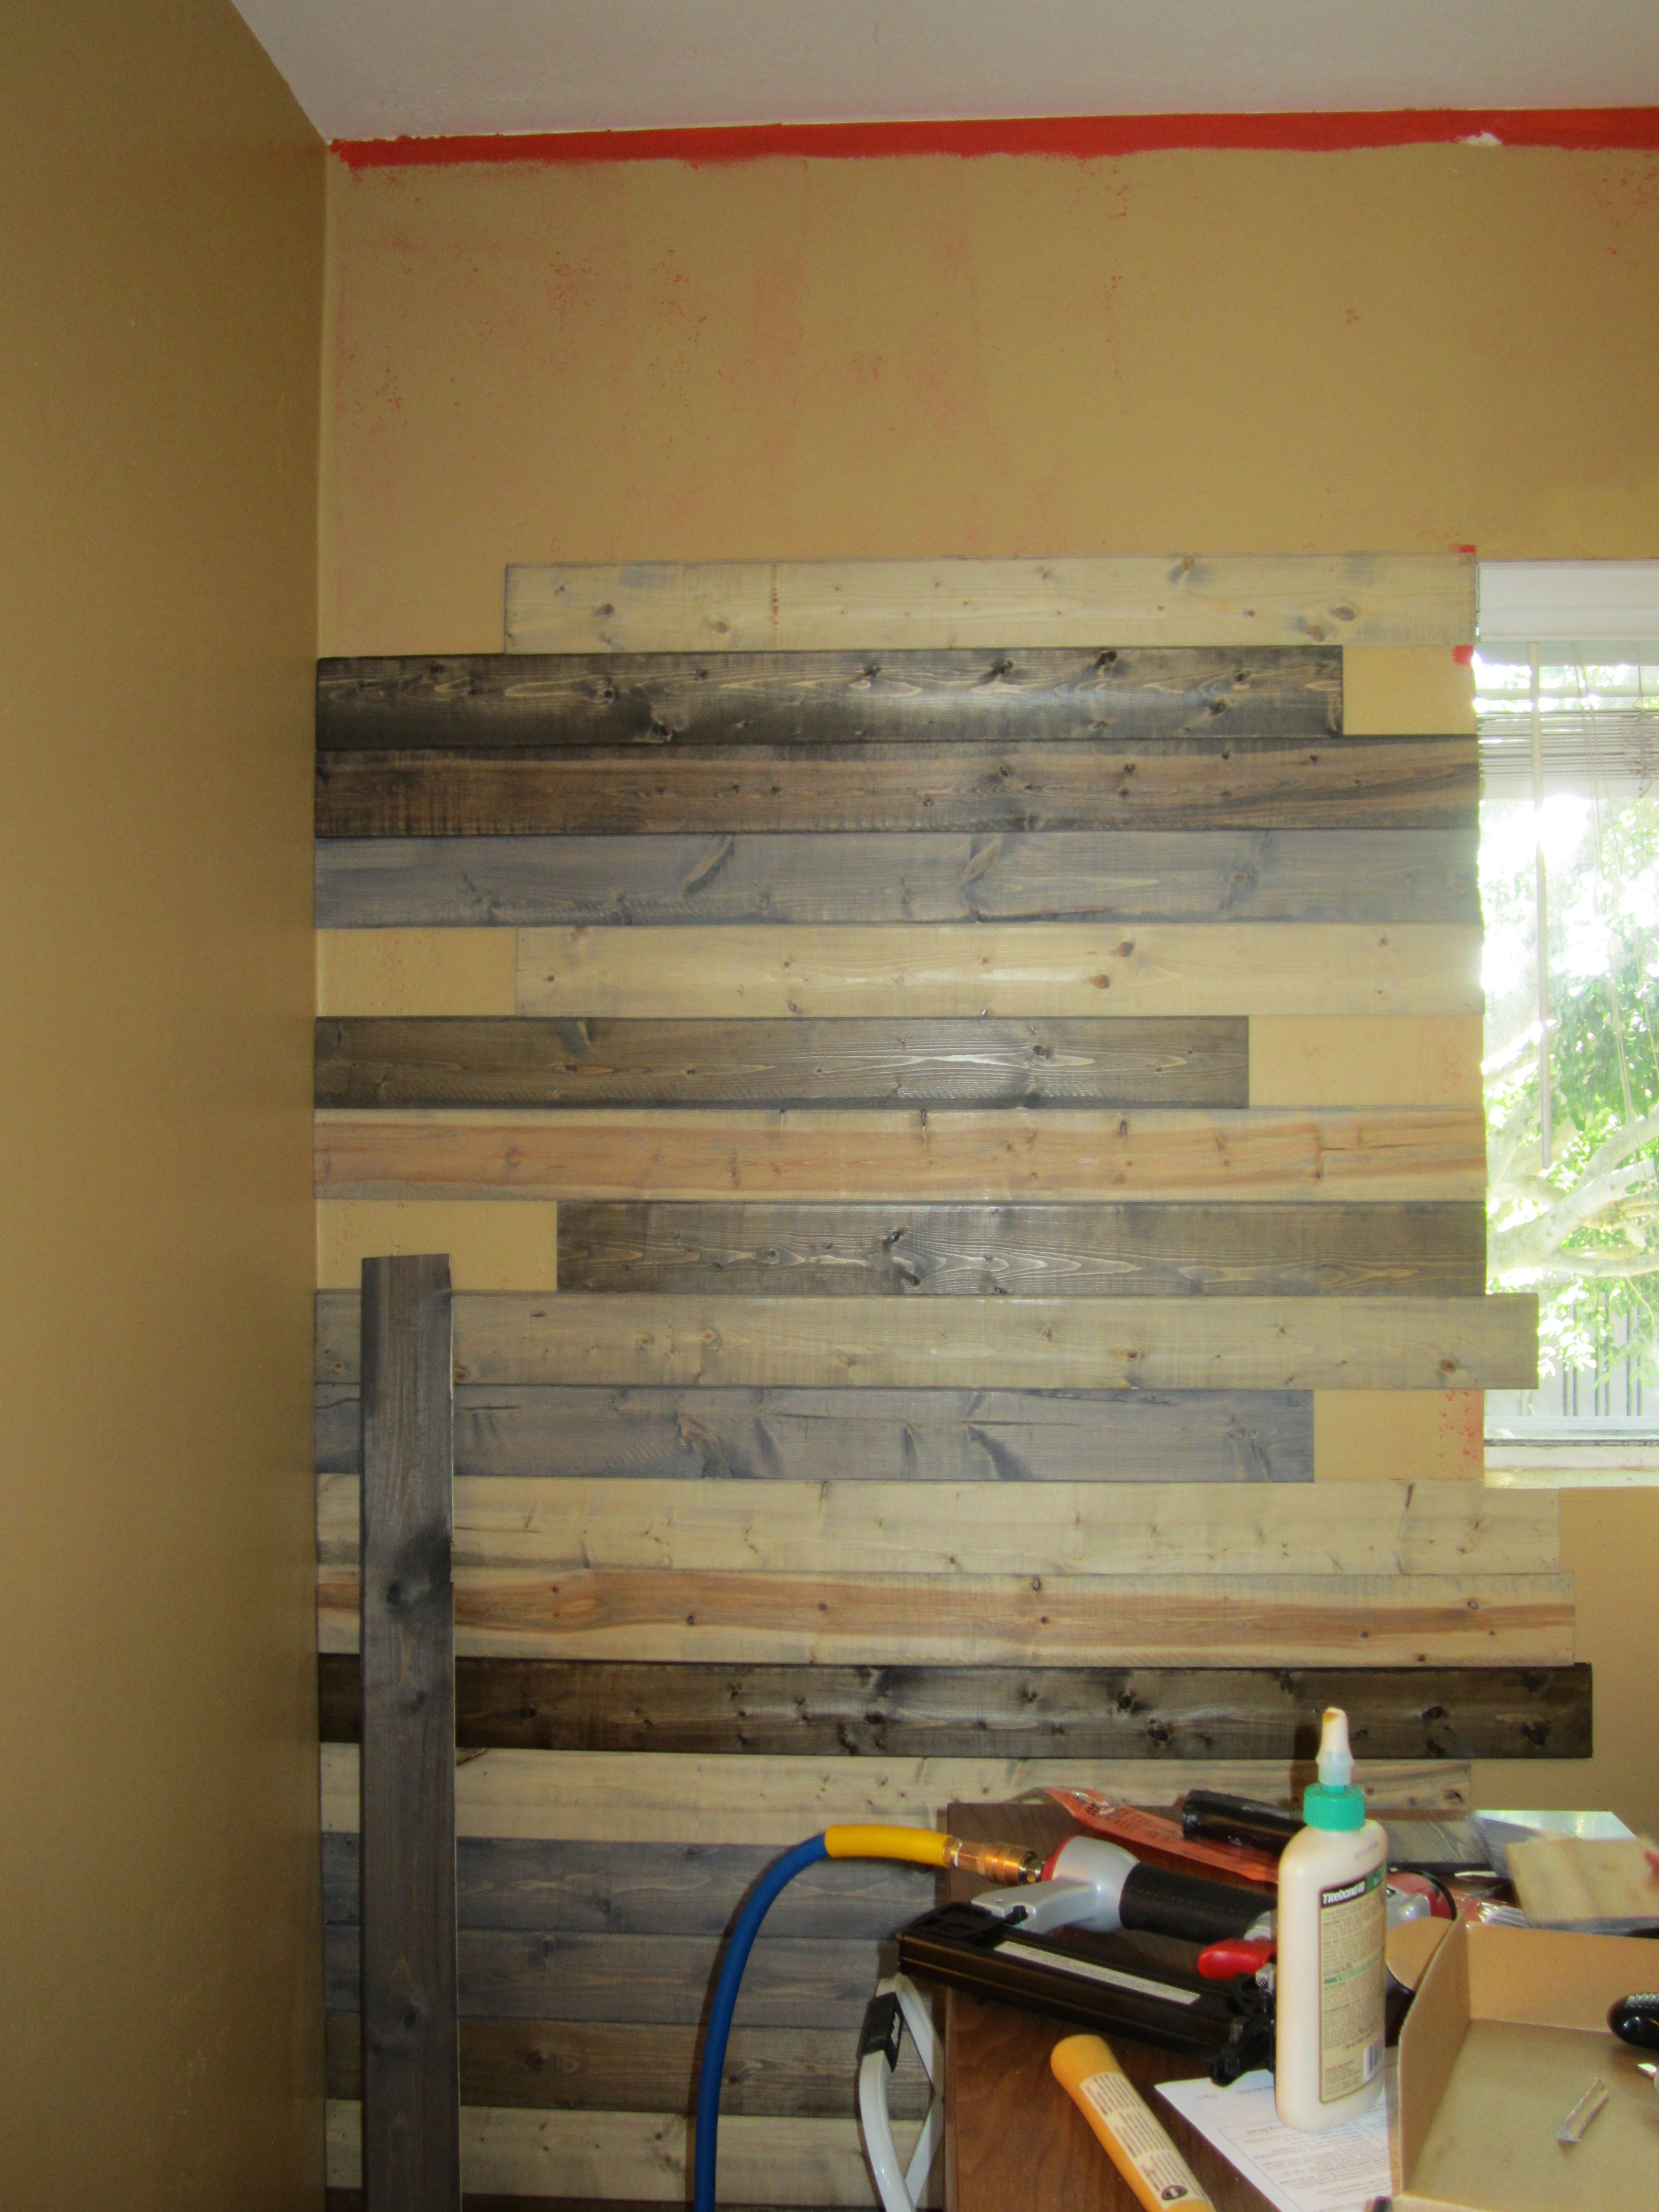 Create A Faux Wood Pallet Wall Wendy James Designs Wood Pallet